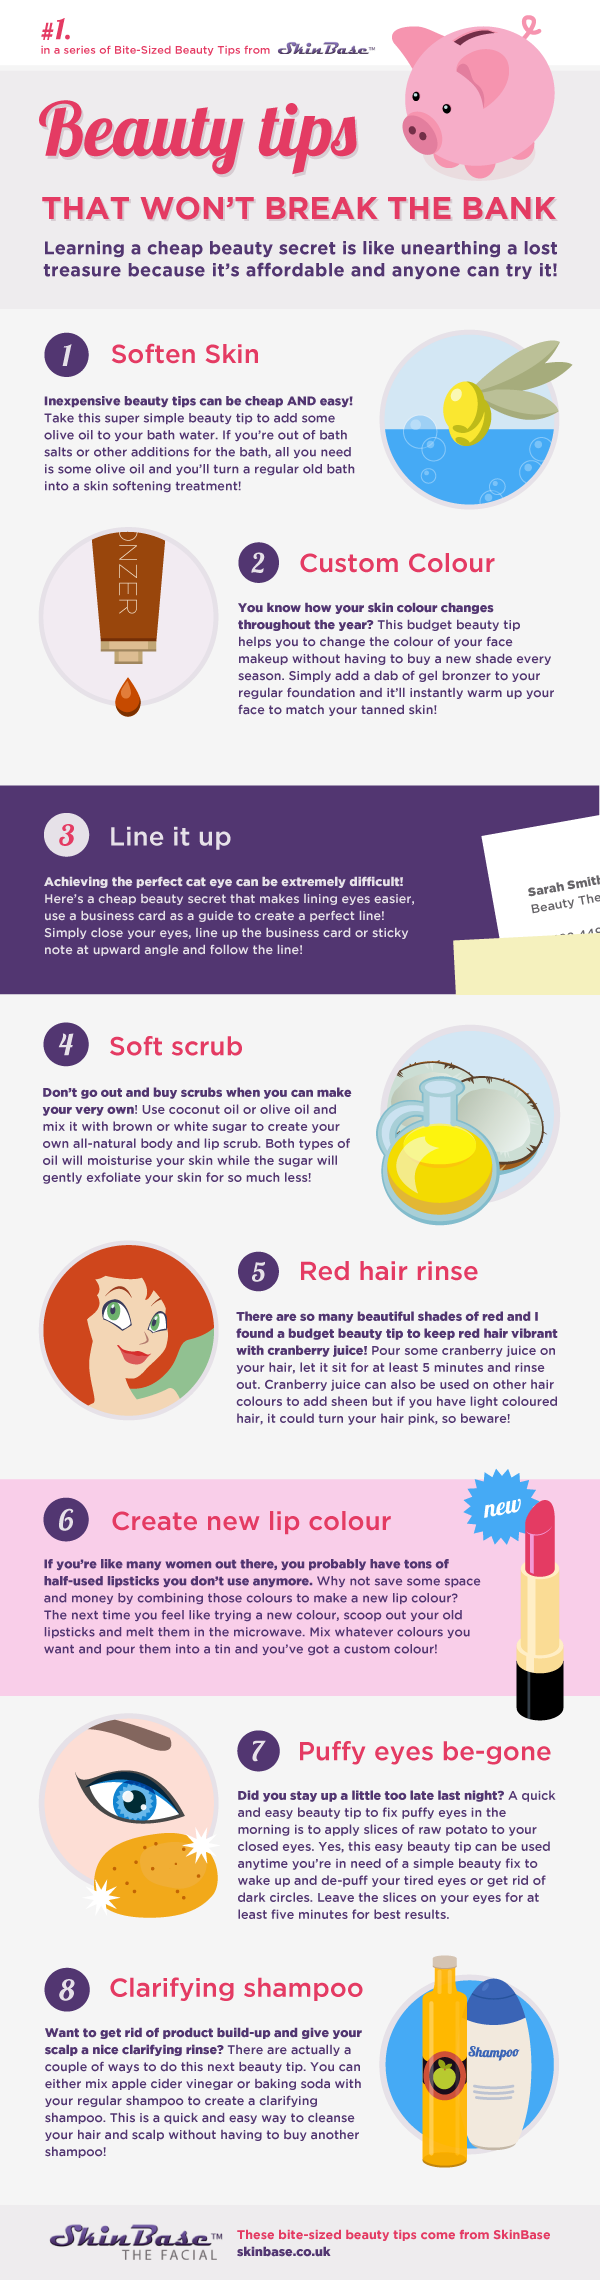 Beauty Tips that Won't Break the Bank [infographic]